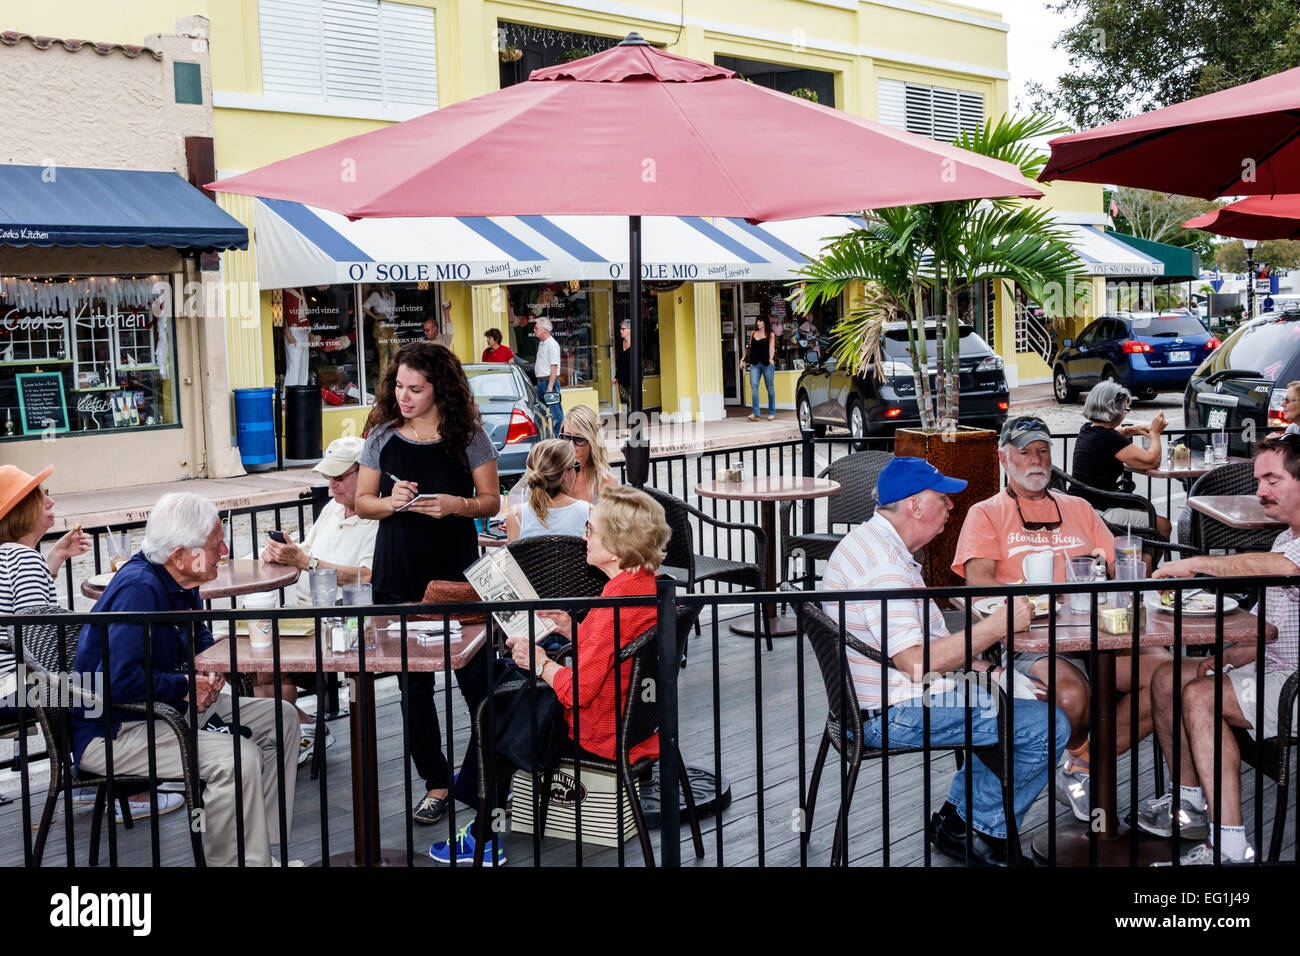 O Sole Mio Cucina Italiana Newberry Fl Sidewalk Outside Casual Open Air Tables Dining Street Cafe Stock